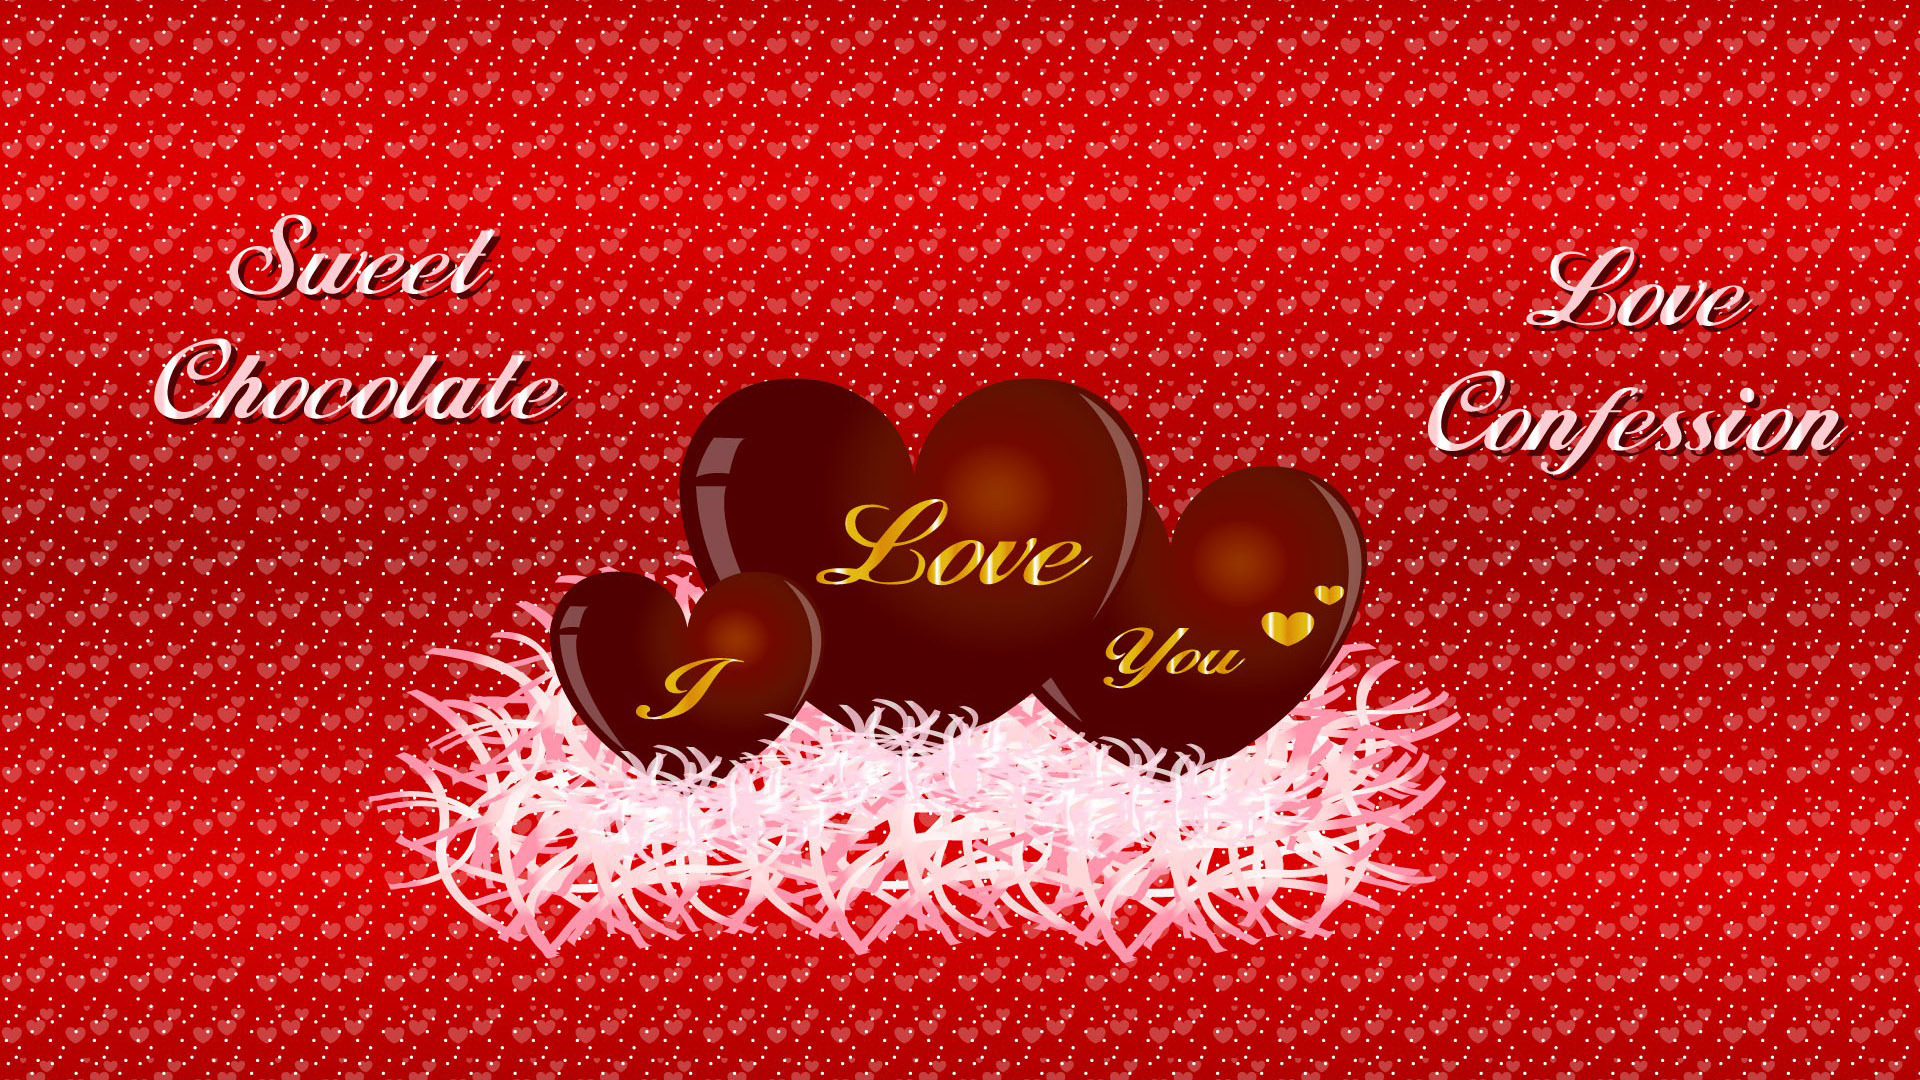 Sweet chocolate for Valentines Day wallpaper 41907 1920x1080